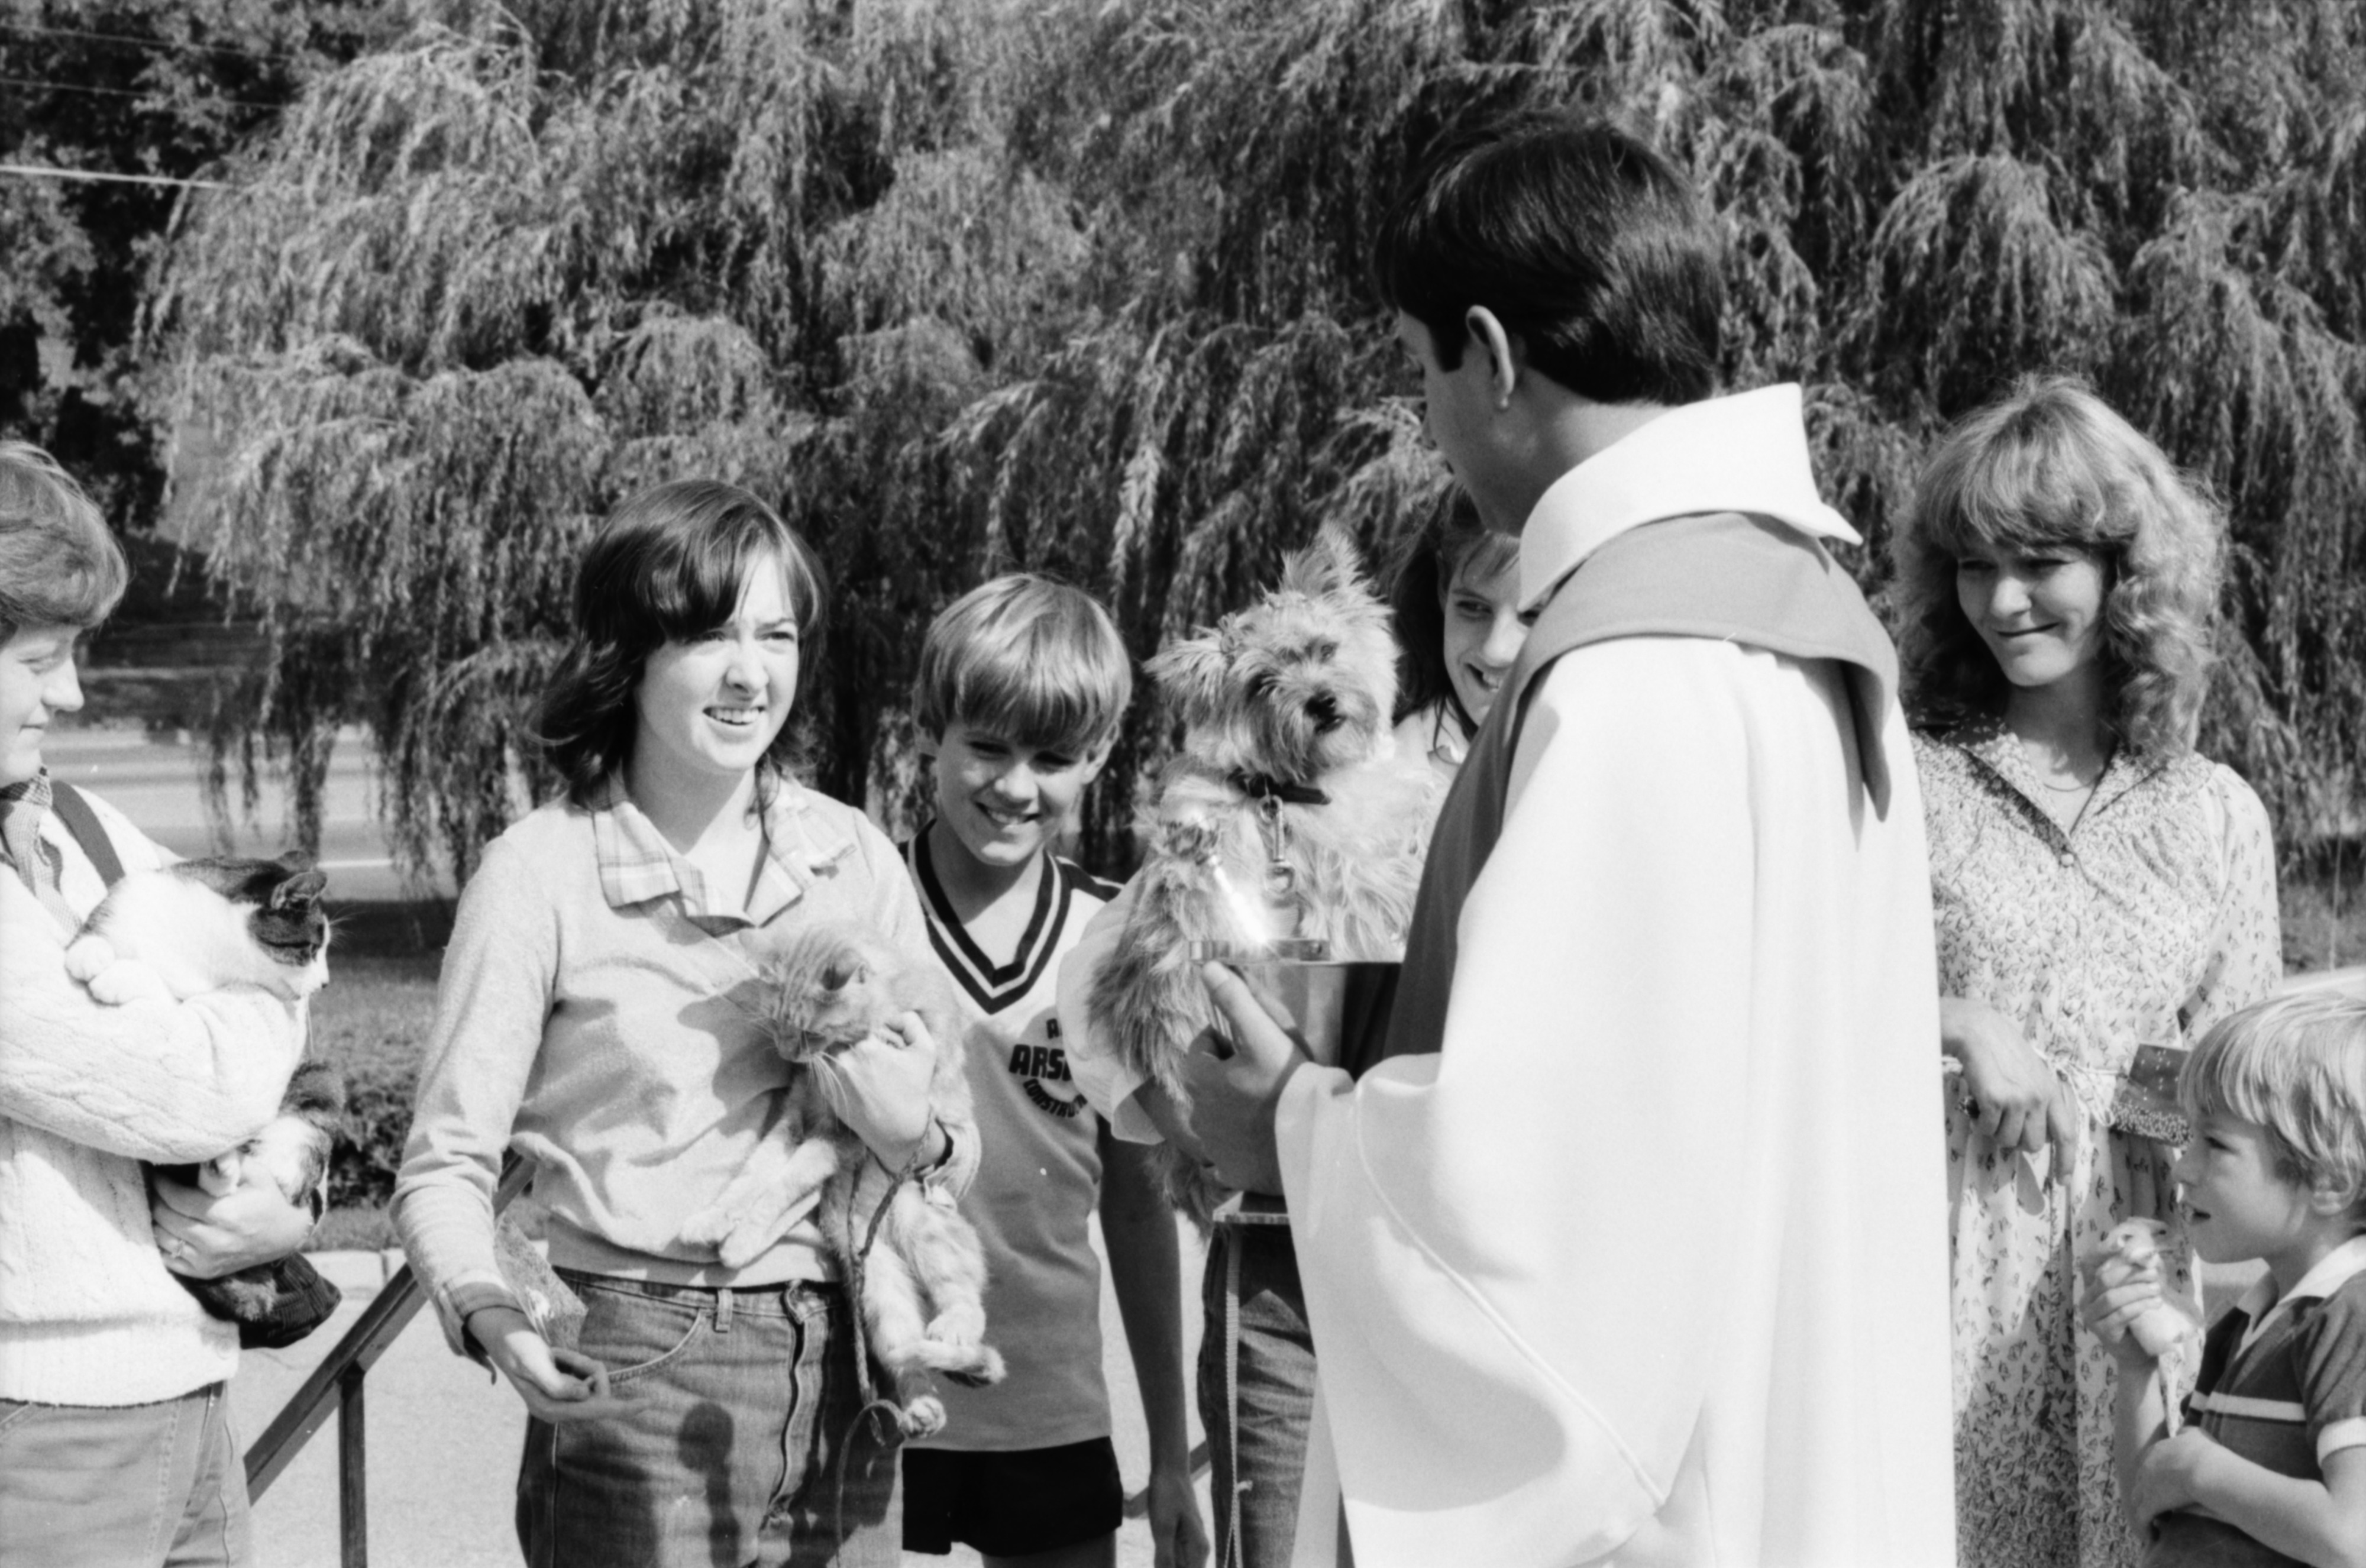 Rev. Mark Inglot During the Blessing of the Pets at St. Francis of Assisi Church, October 1983 image